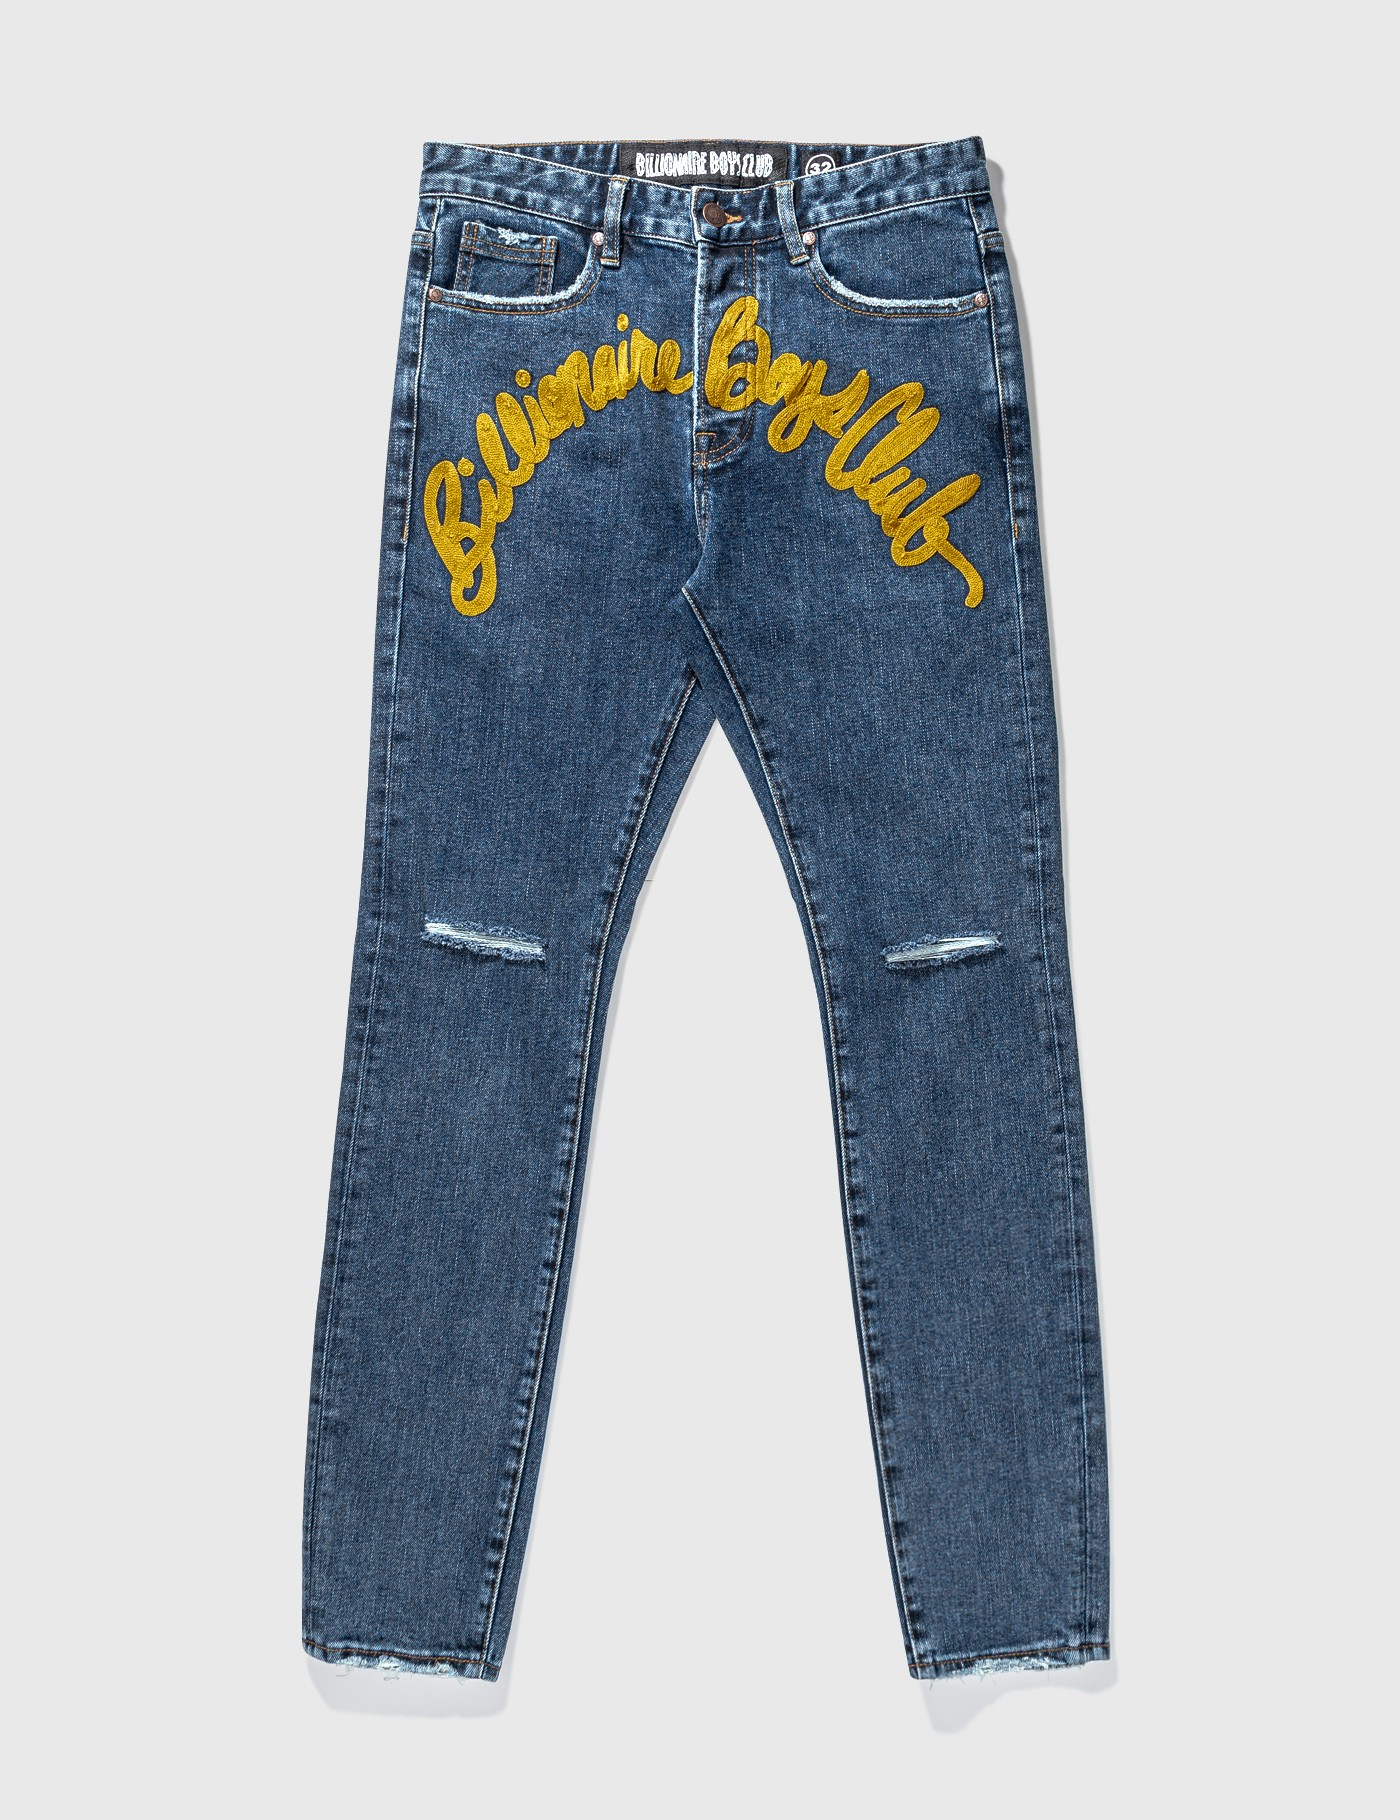 Billionaire Boys Club Jeans BB ORION JEANS